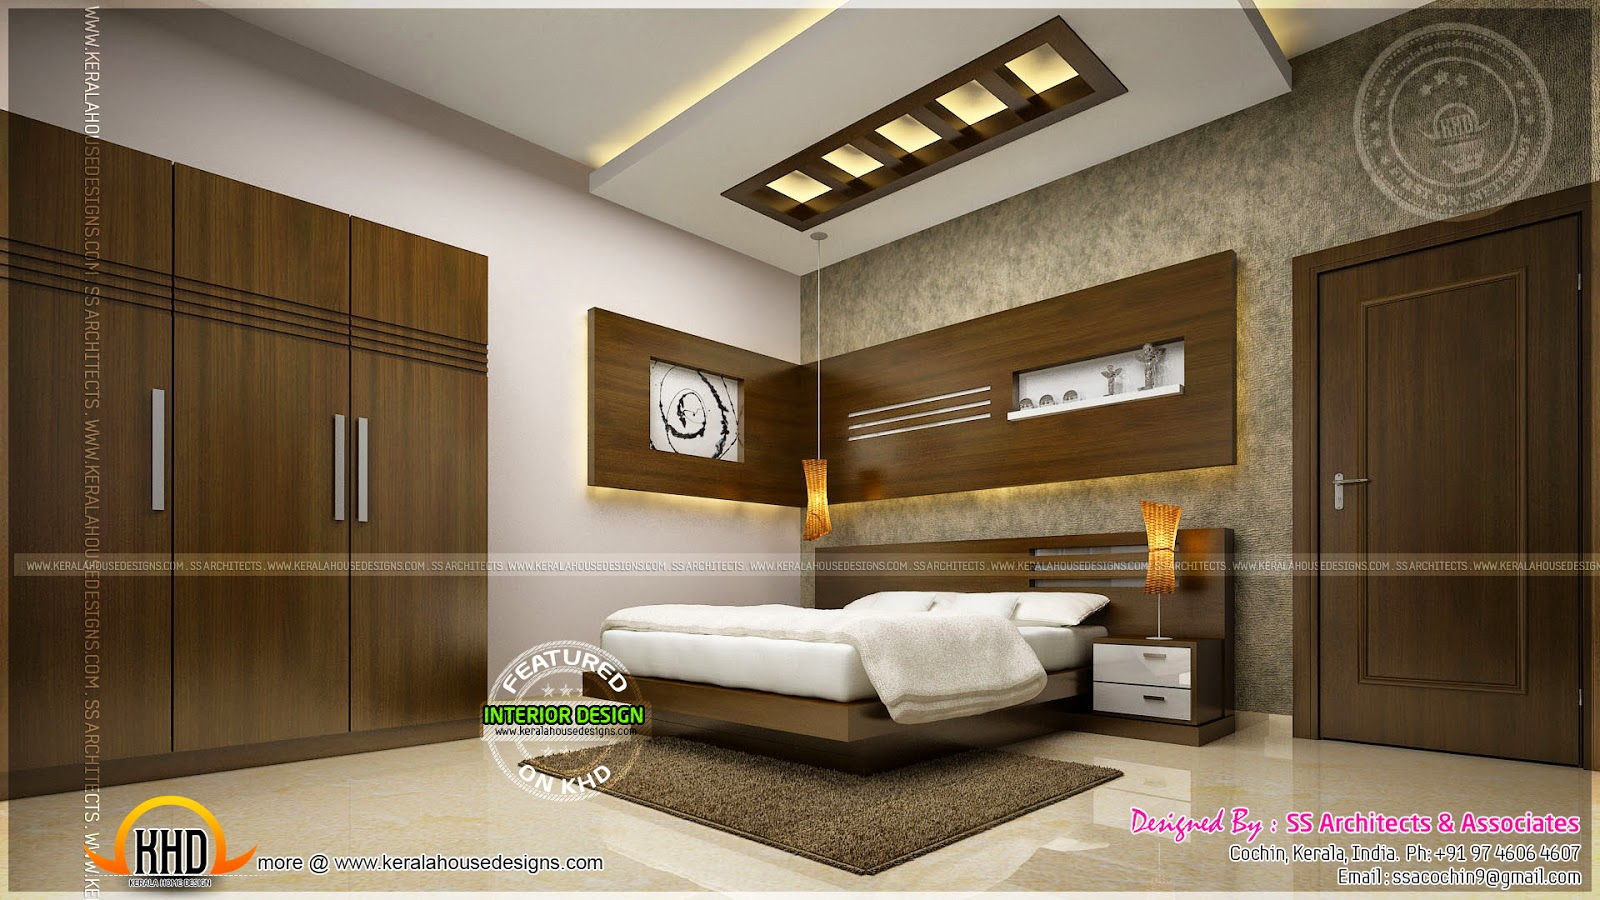 Awesome master bedroom interior kerala home design and for Master bedroom interior design ideas